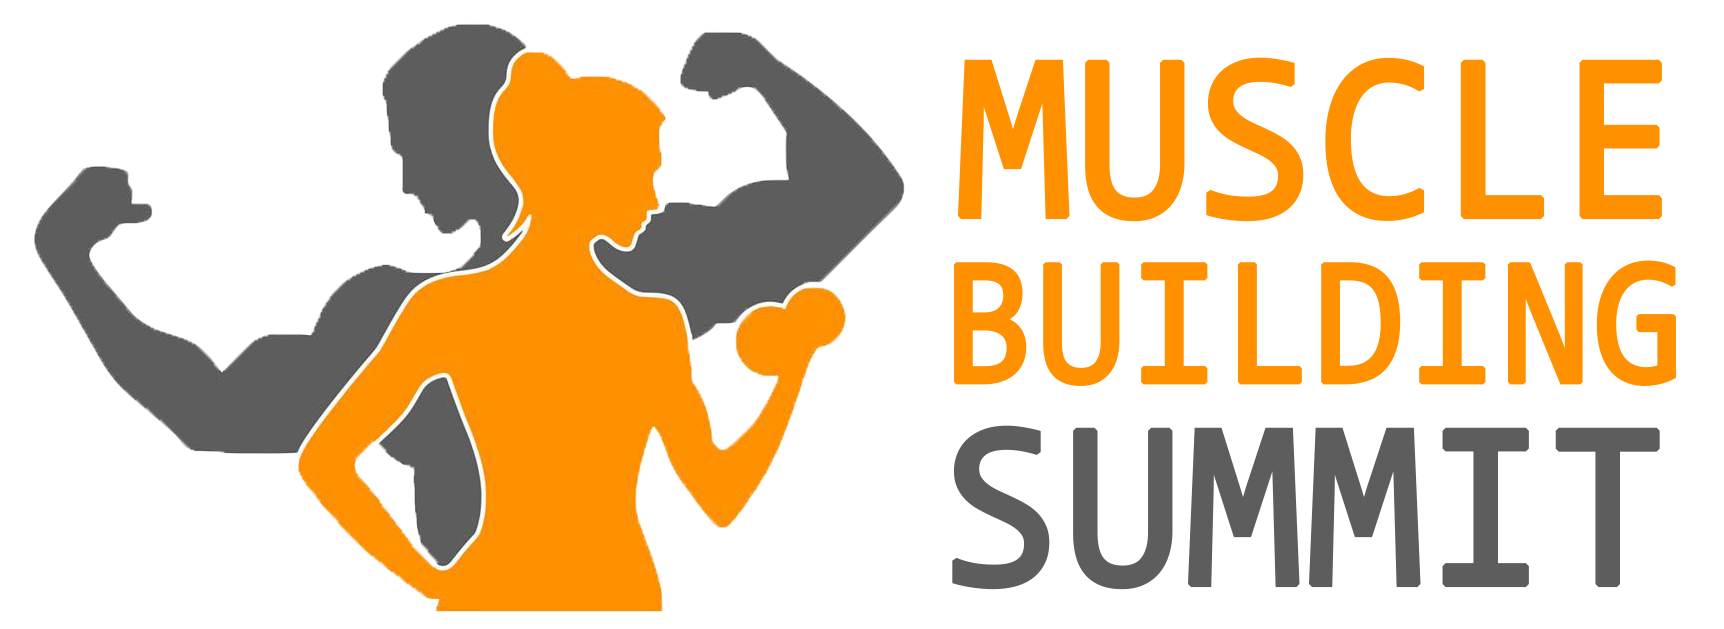 Muscle logo png. Building summit